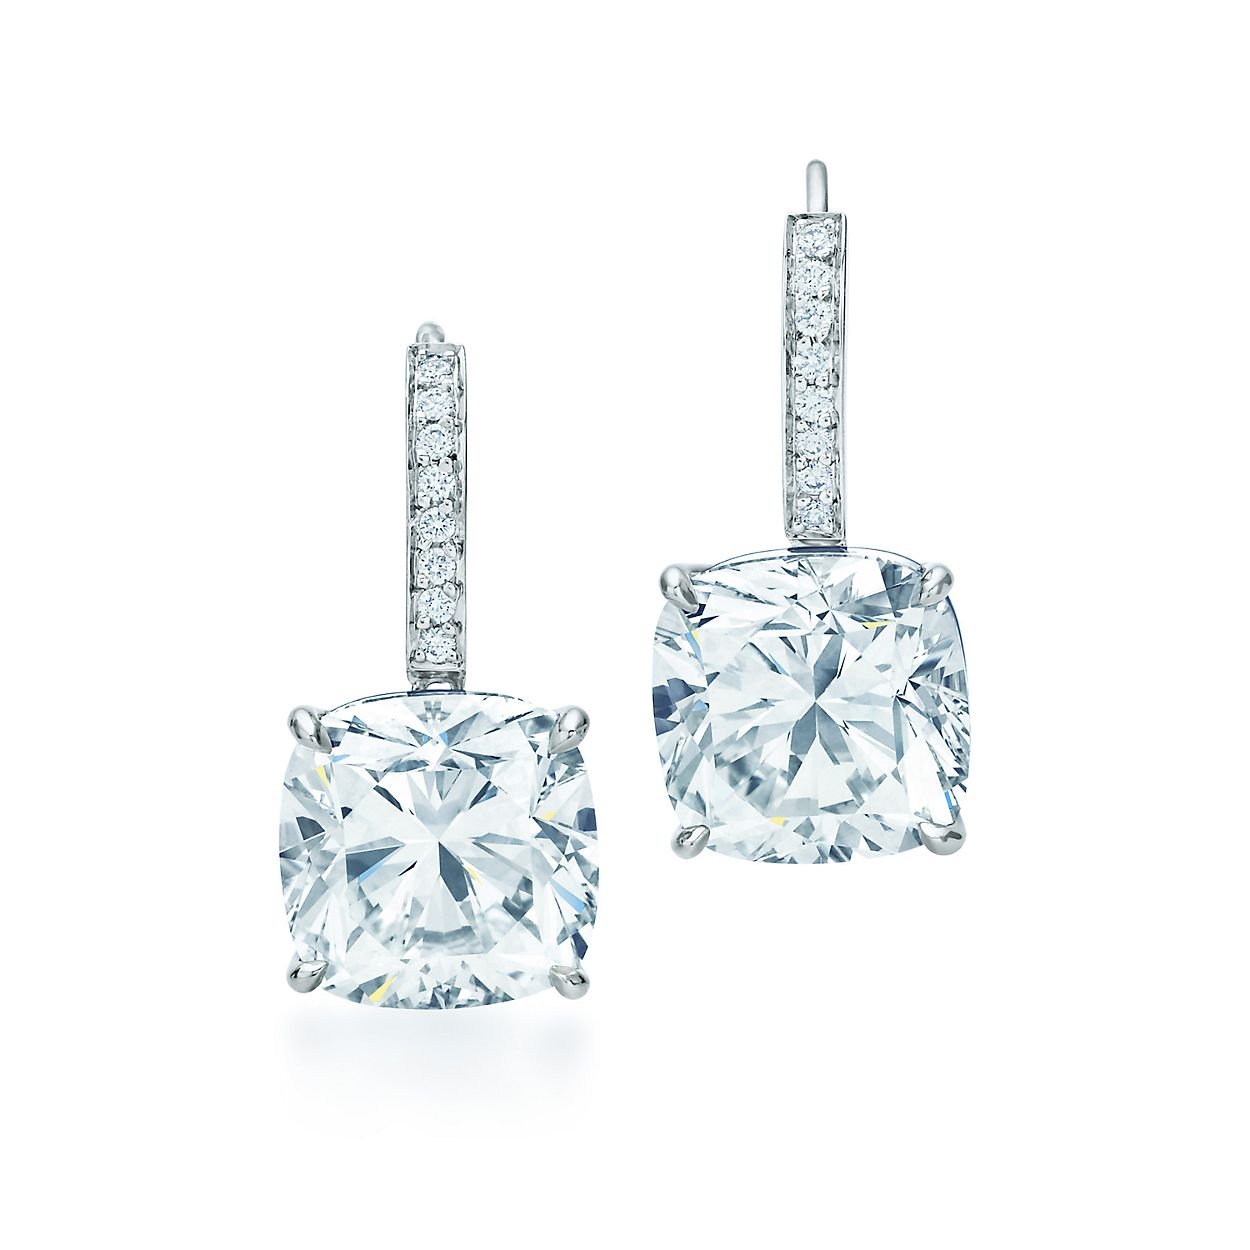 Tiffany Novo Diamond Earrings